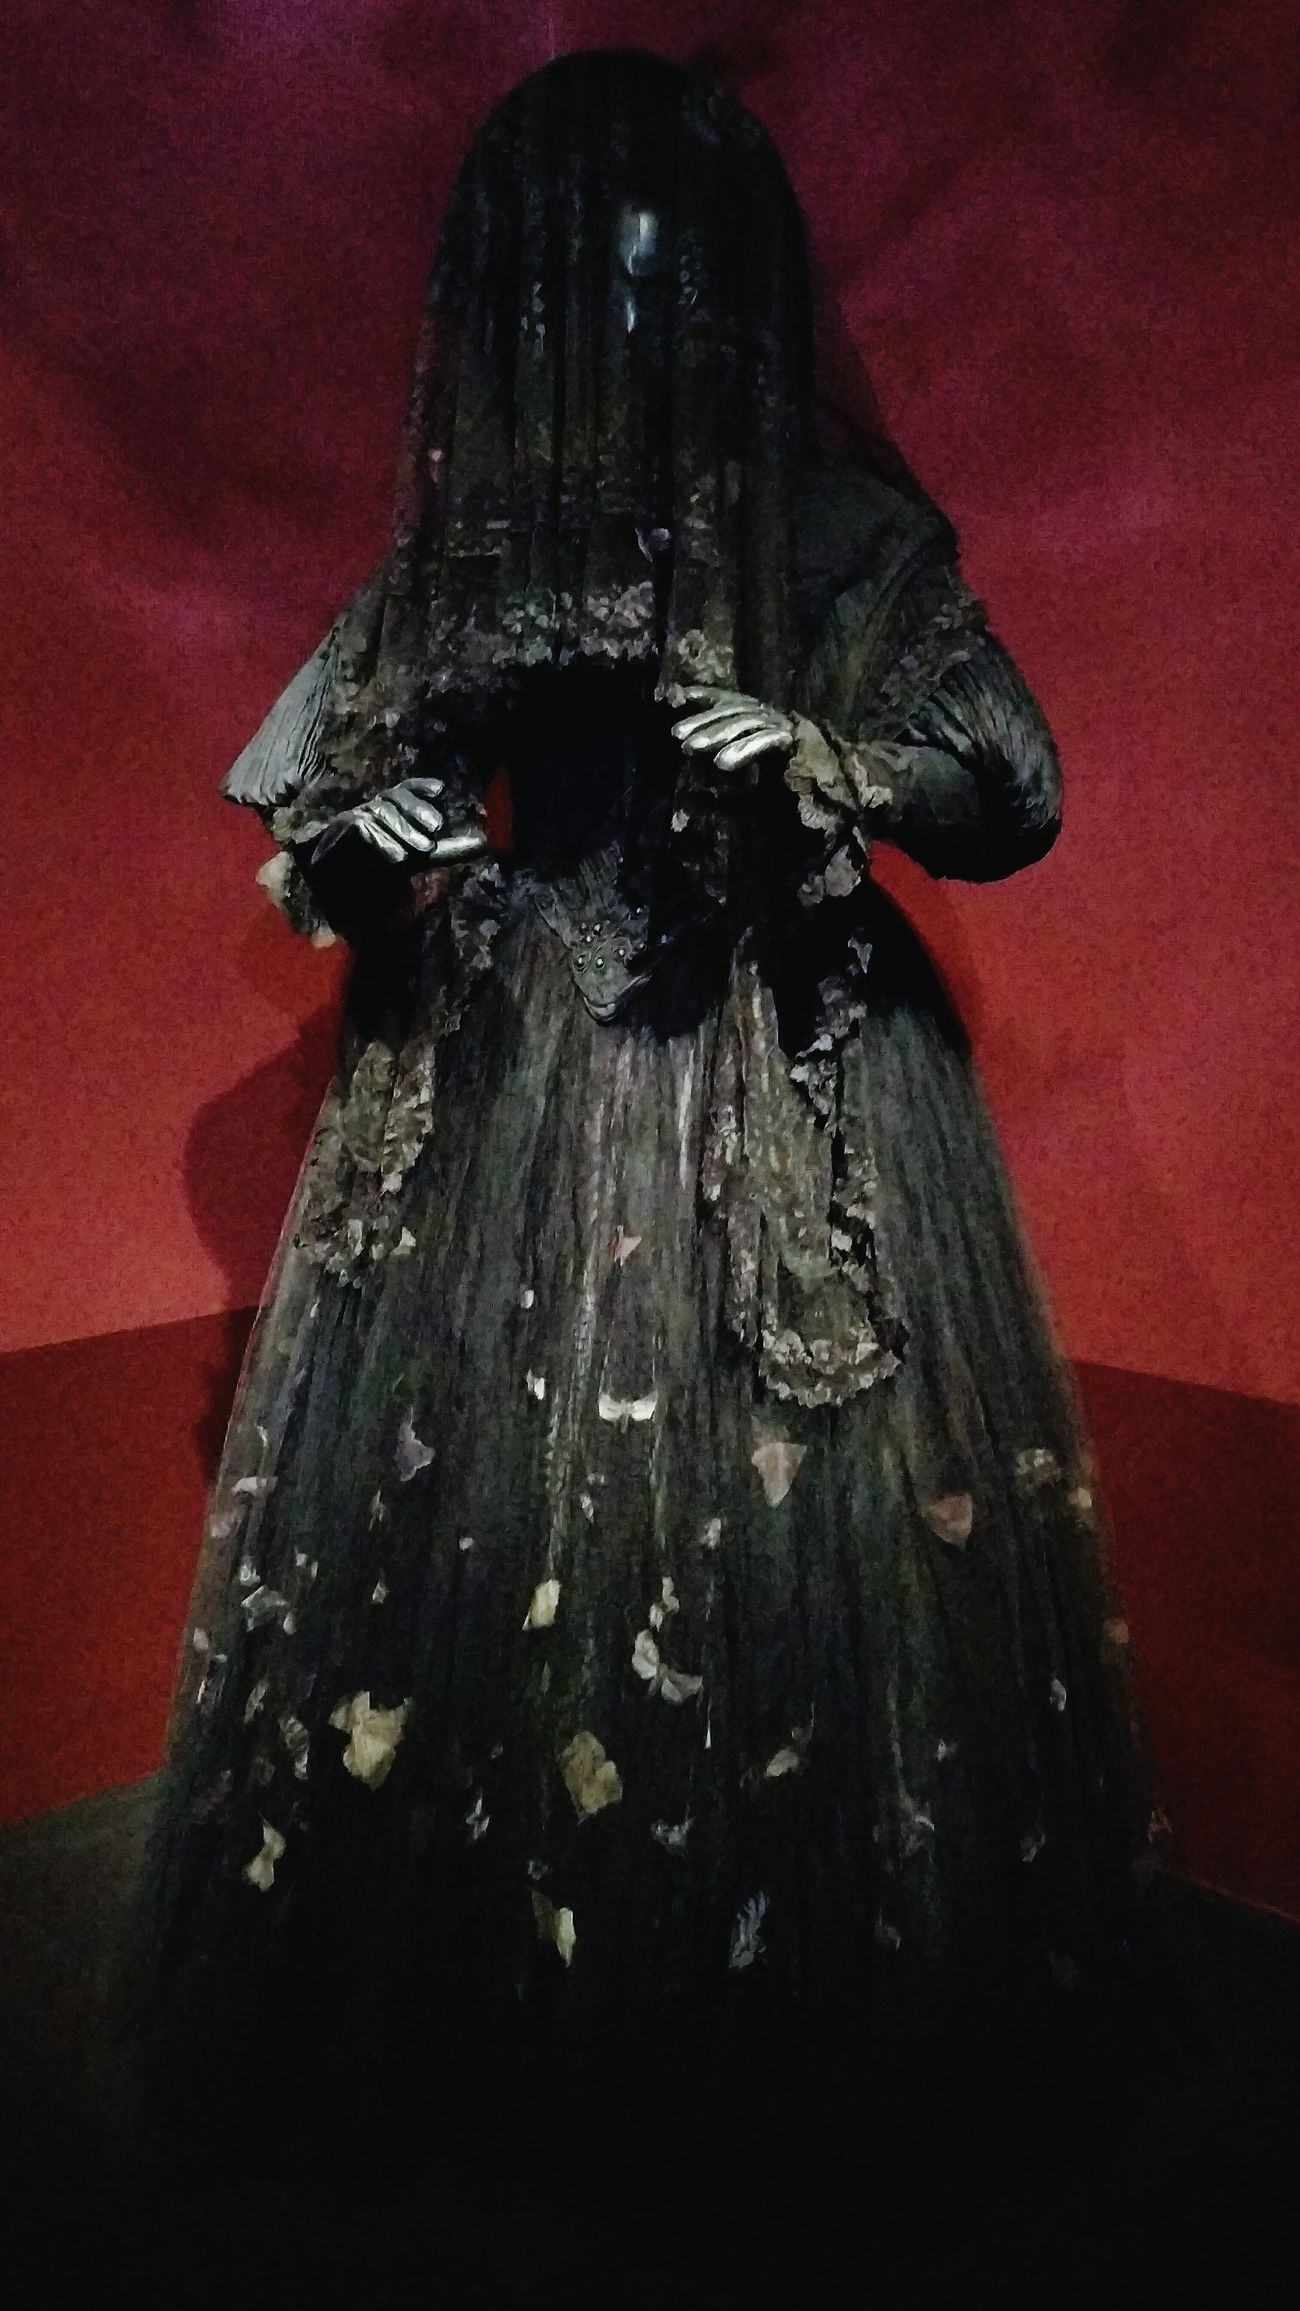 Crimson Peak Ghost Guillermo Del Toro Lacma Lacmamuseum HTC One M9 Los Angeles, California